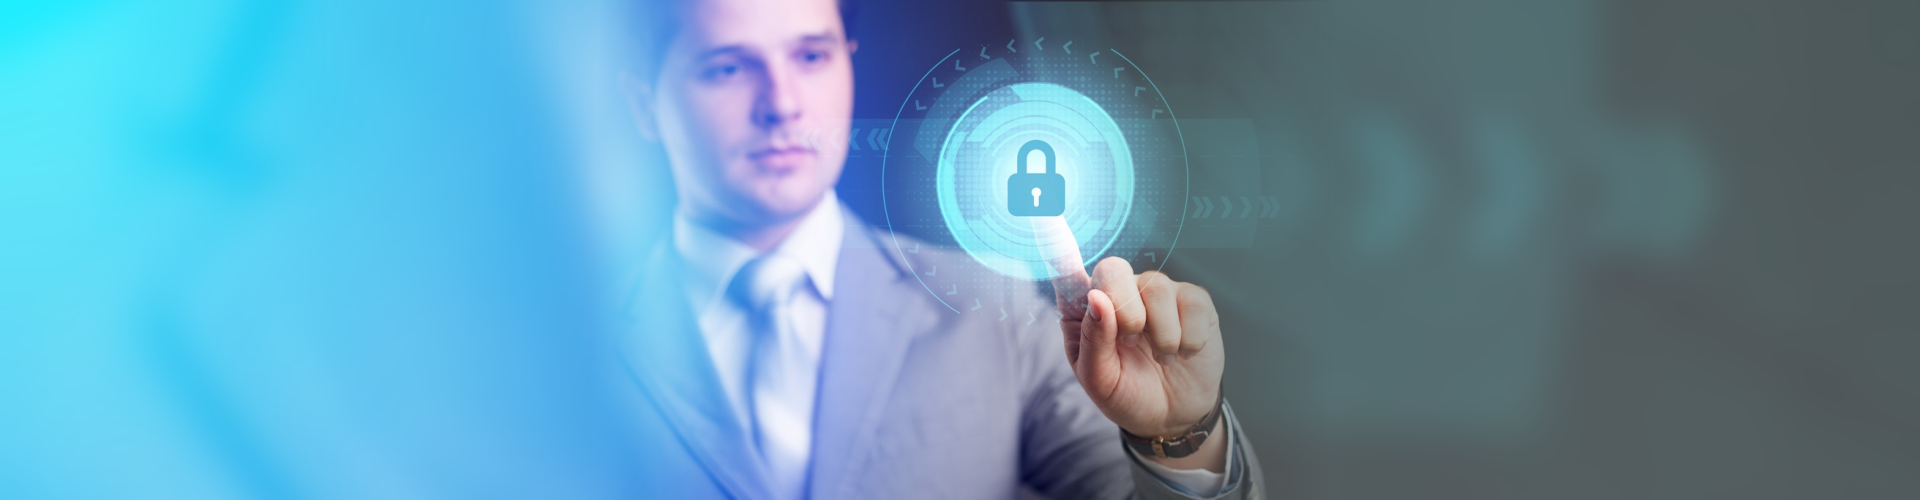 cybersecurity and protection concept